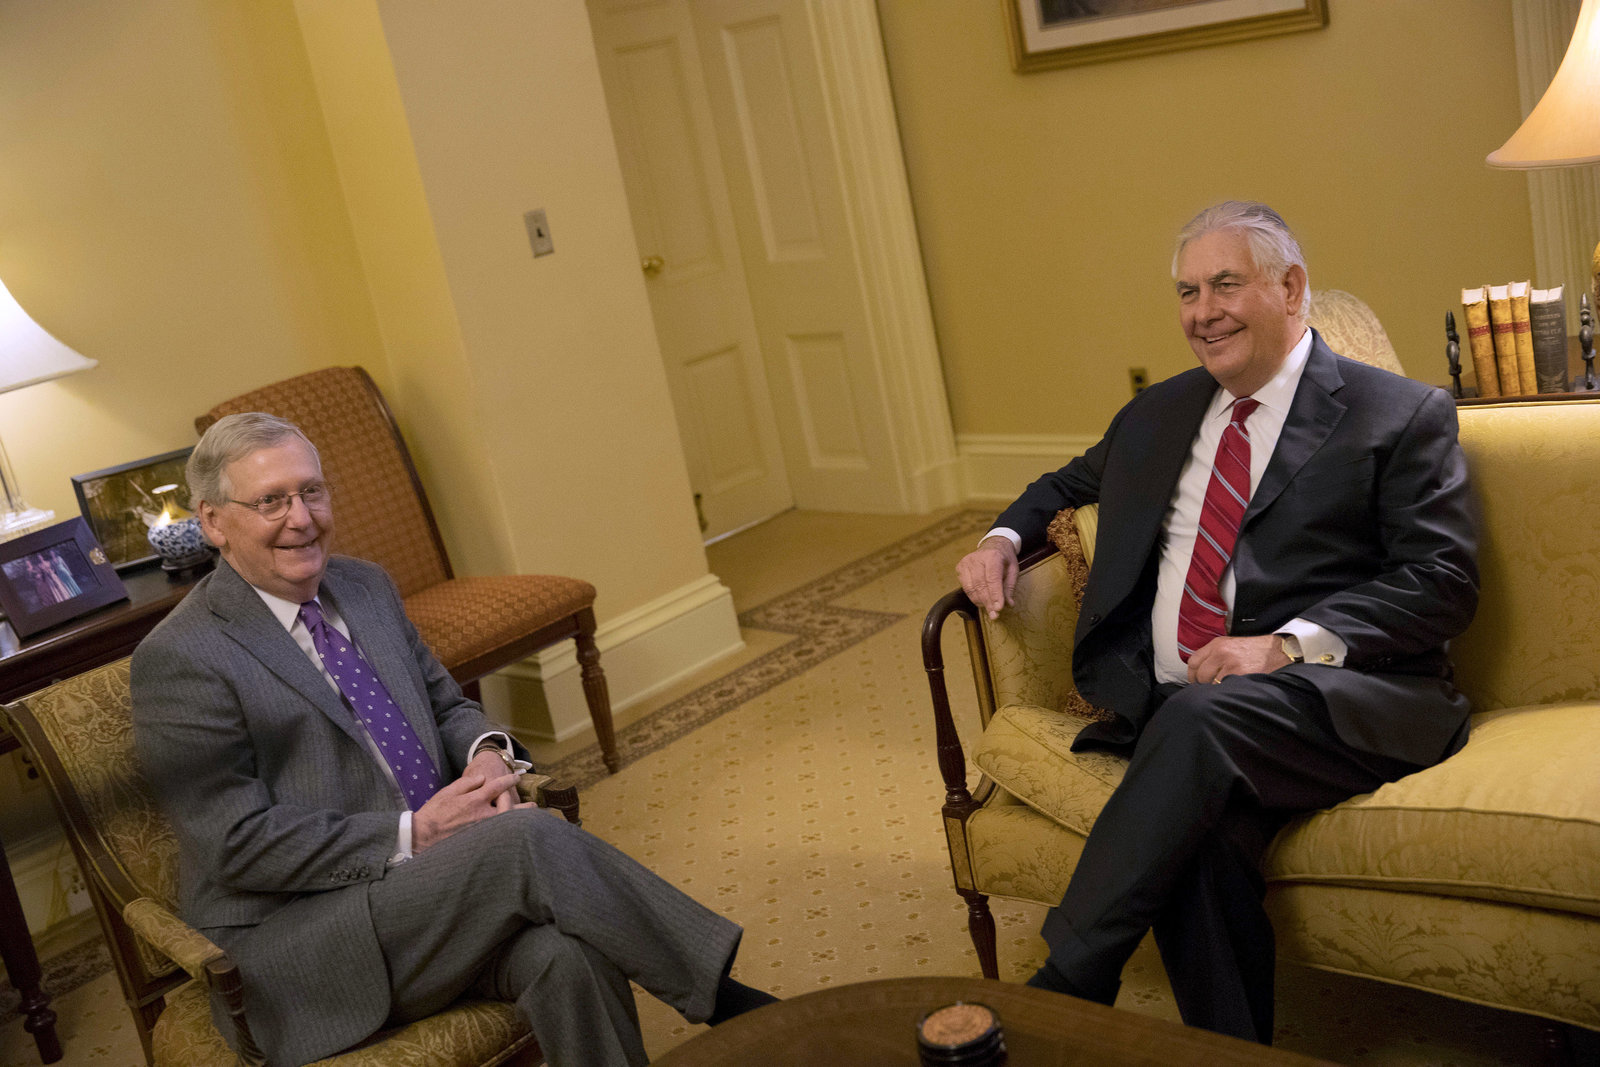 Former Exxon chief Rex Tillerson meets with House Majority Leader Mitch McConnell